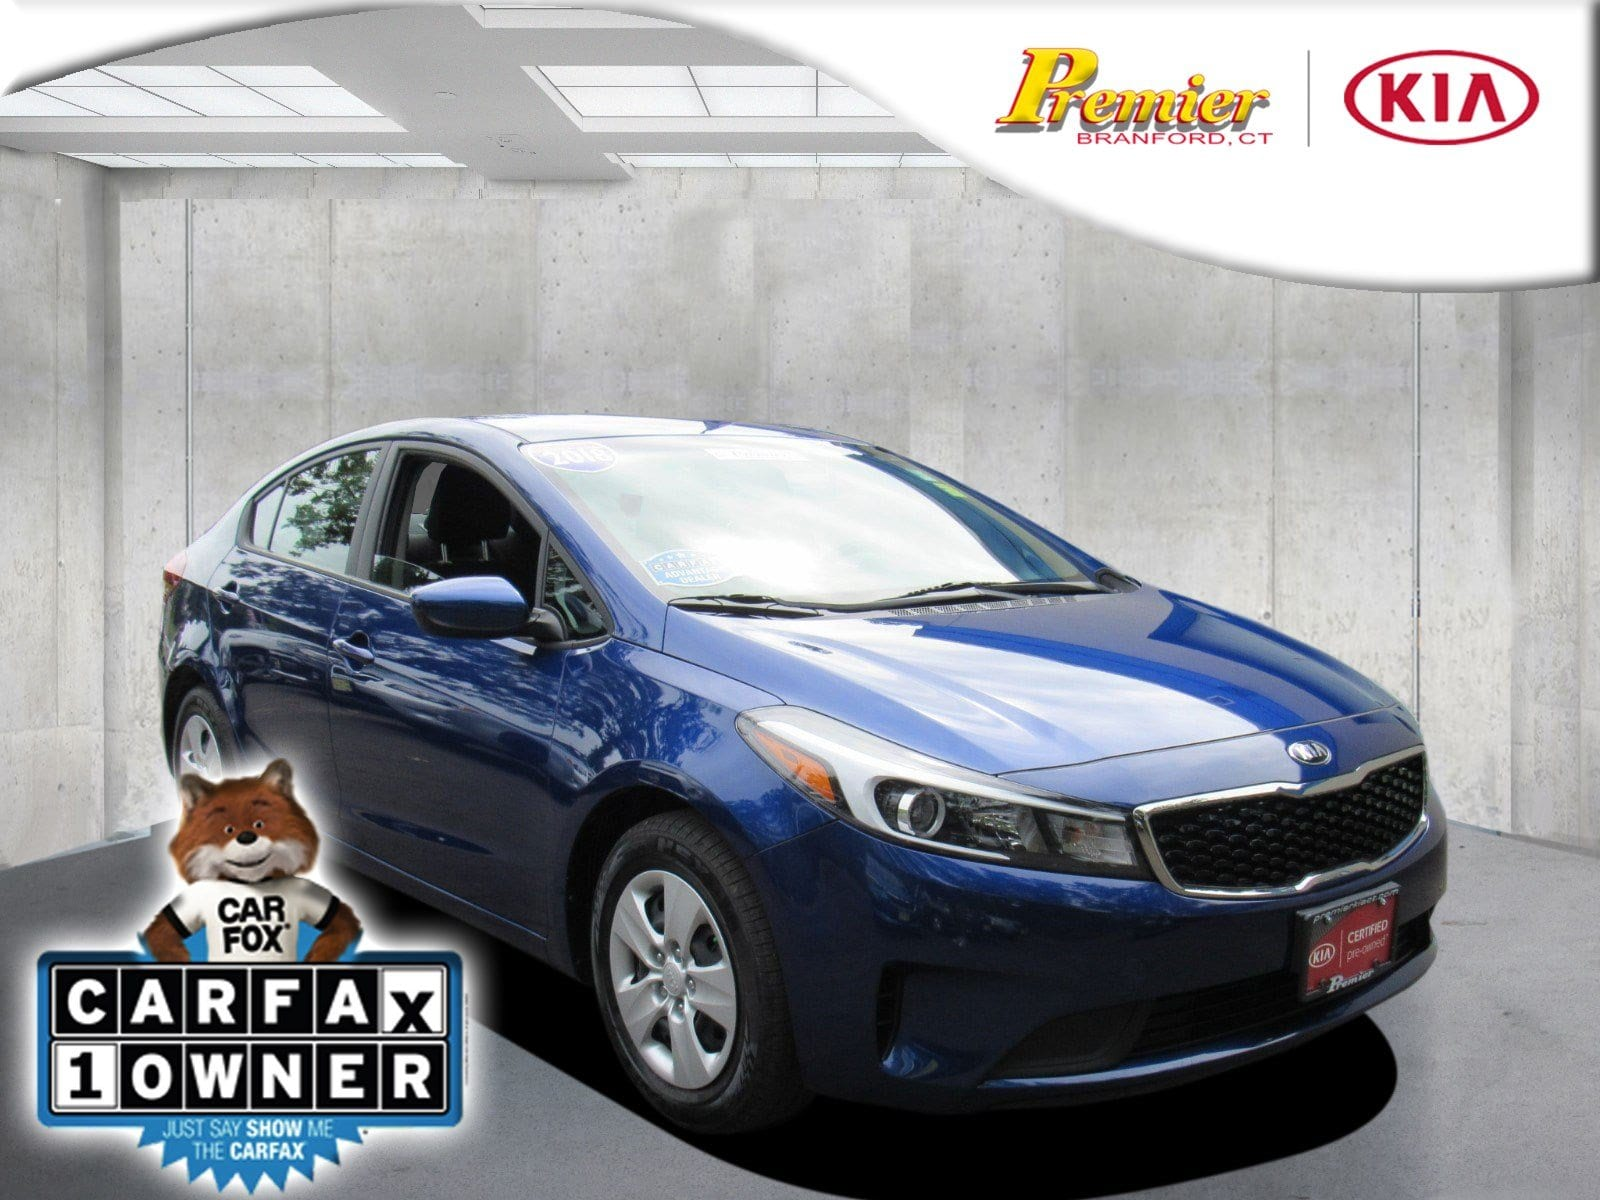 Carfax Discount Luxury New and Used Clearance Inventory From Premier Subaru Branford Ct